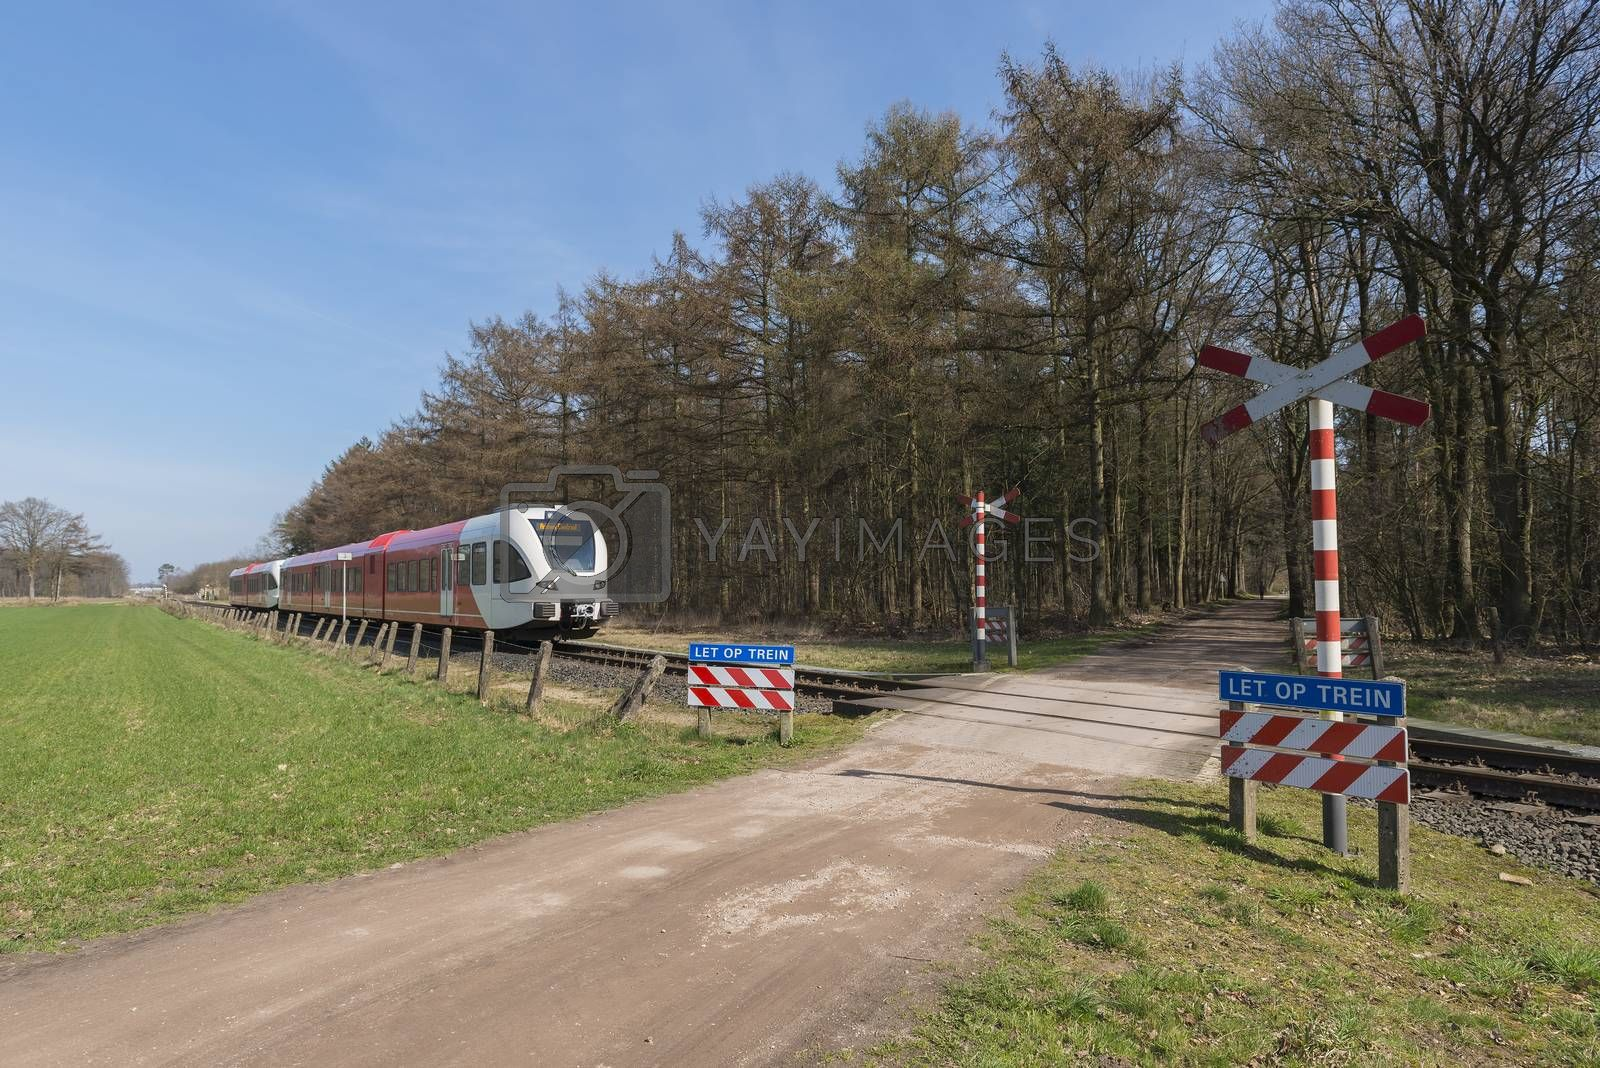 Unguarded, light rail railway crossing without barriers and warning lights in the East of the Netherlands